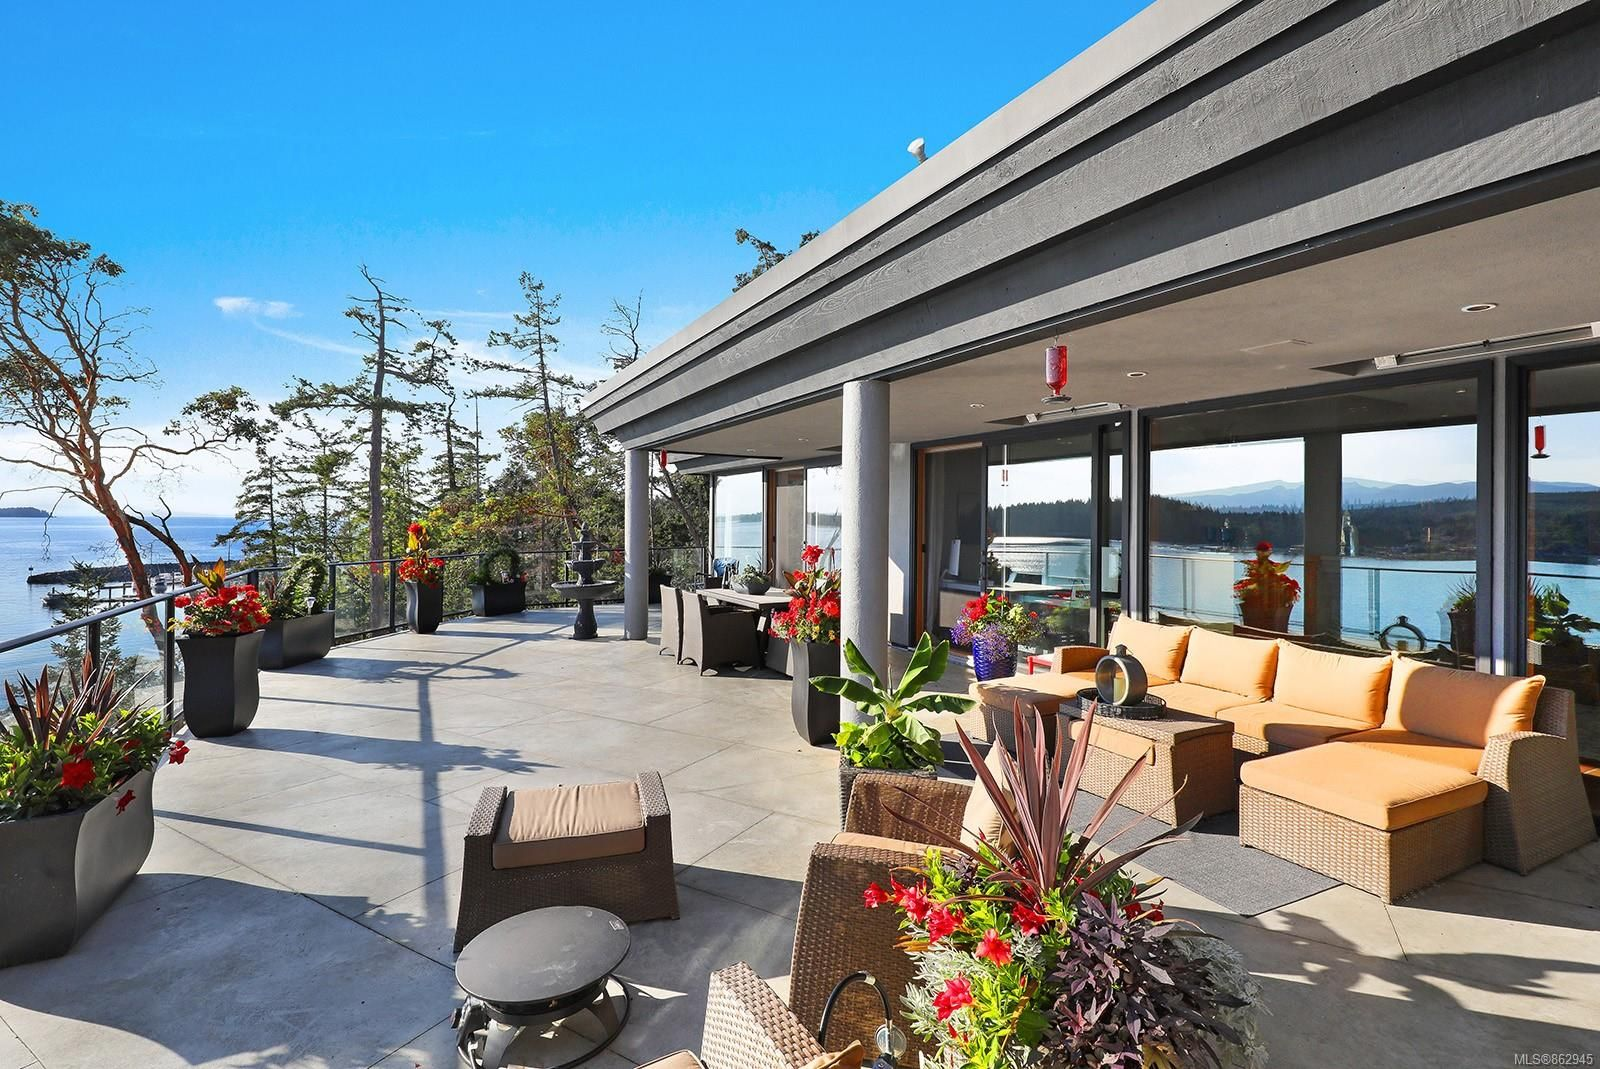 Photo 38: Photos: 1675 Claudet Rd in : PQ Nanoose House for sale (Parksville/Qualicum)  : MLS®# 862945